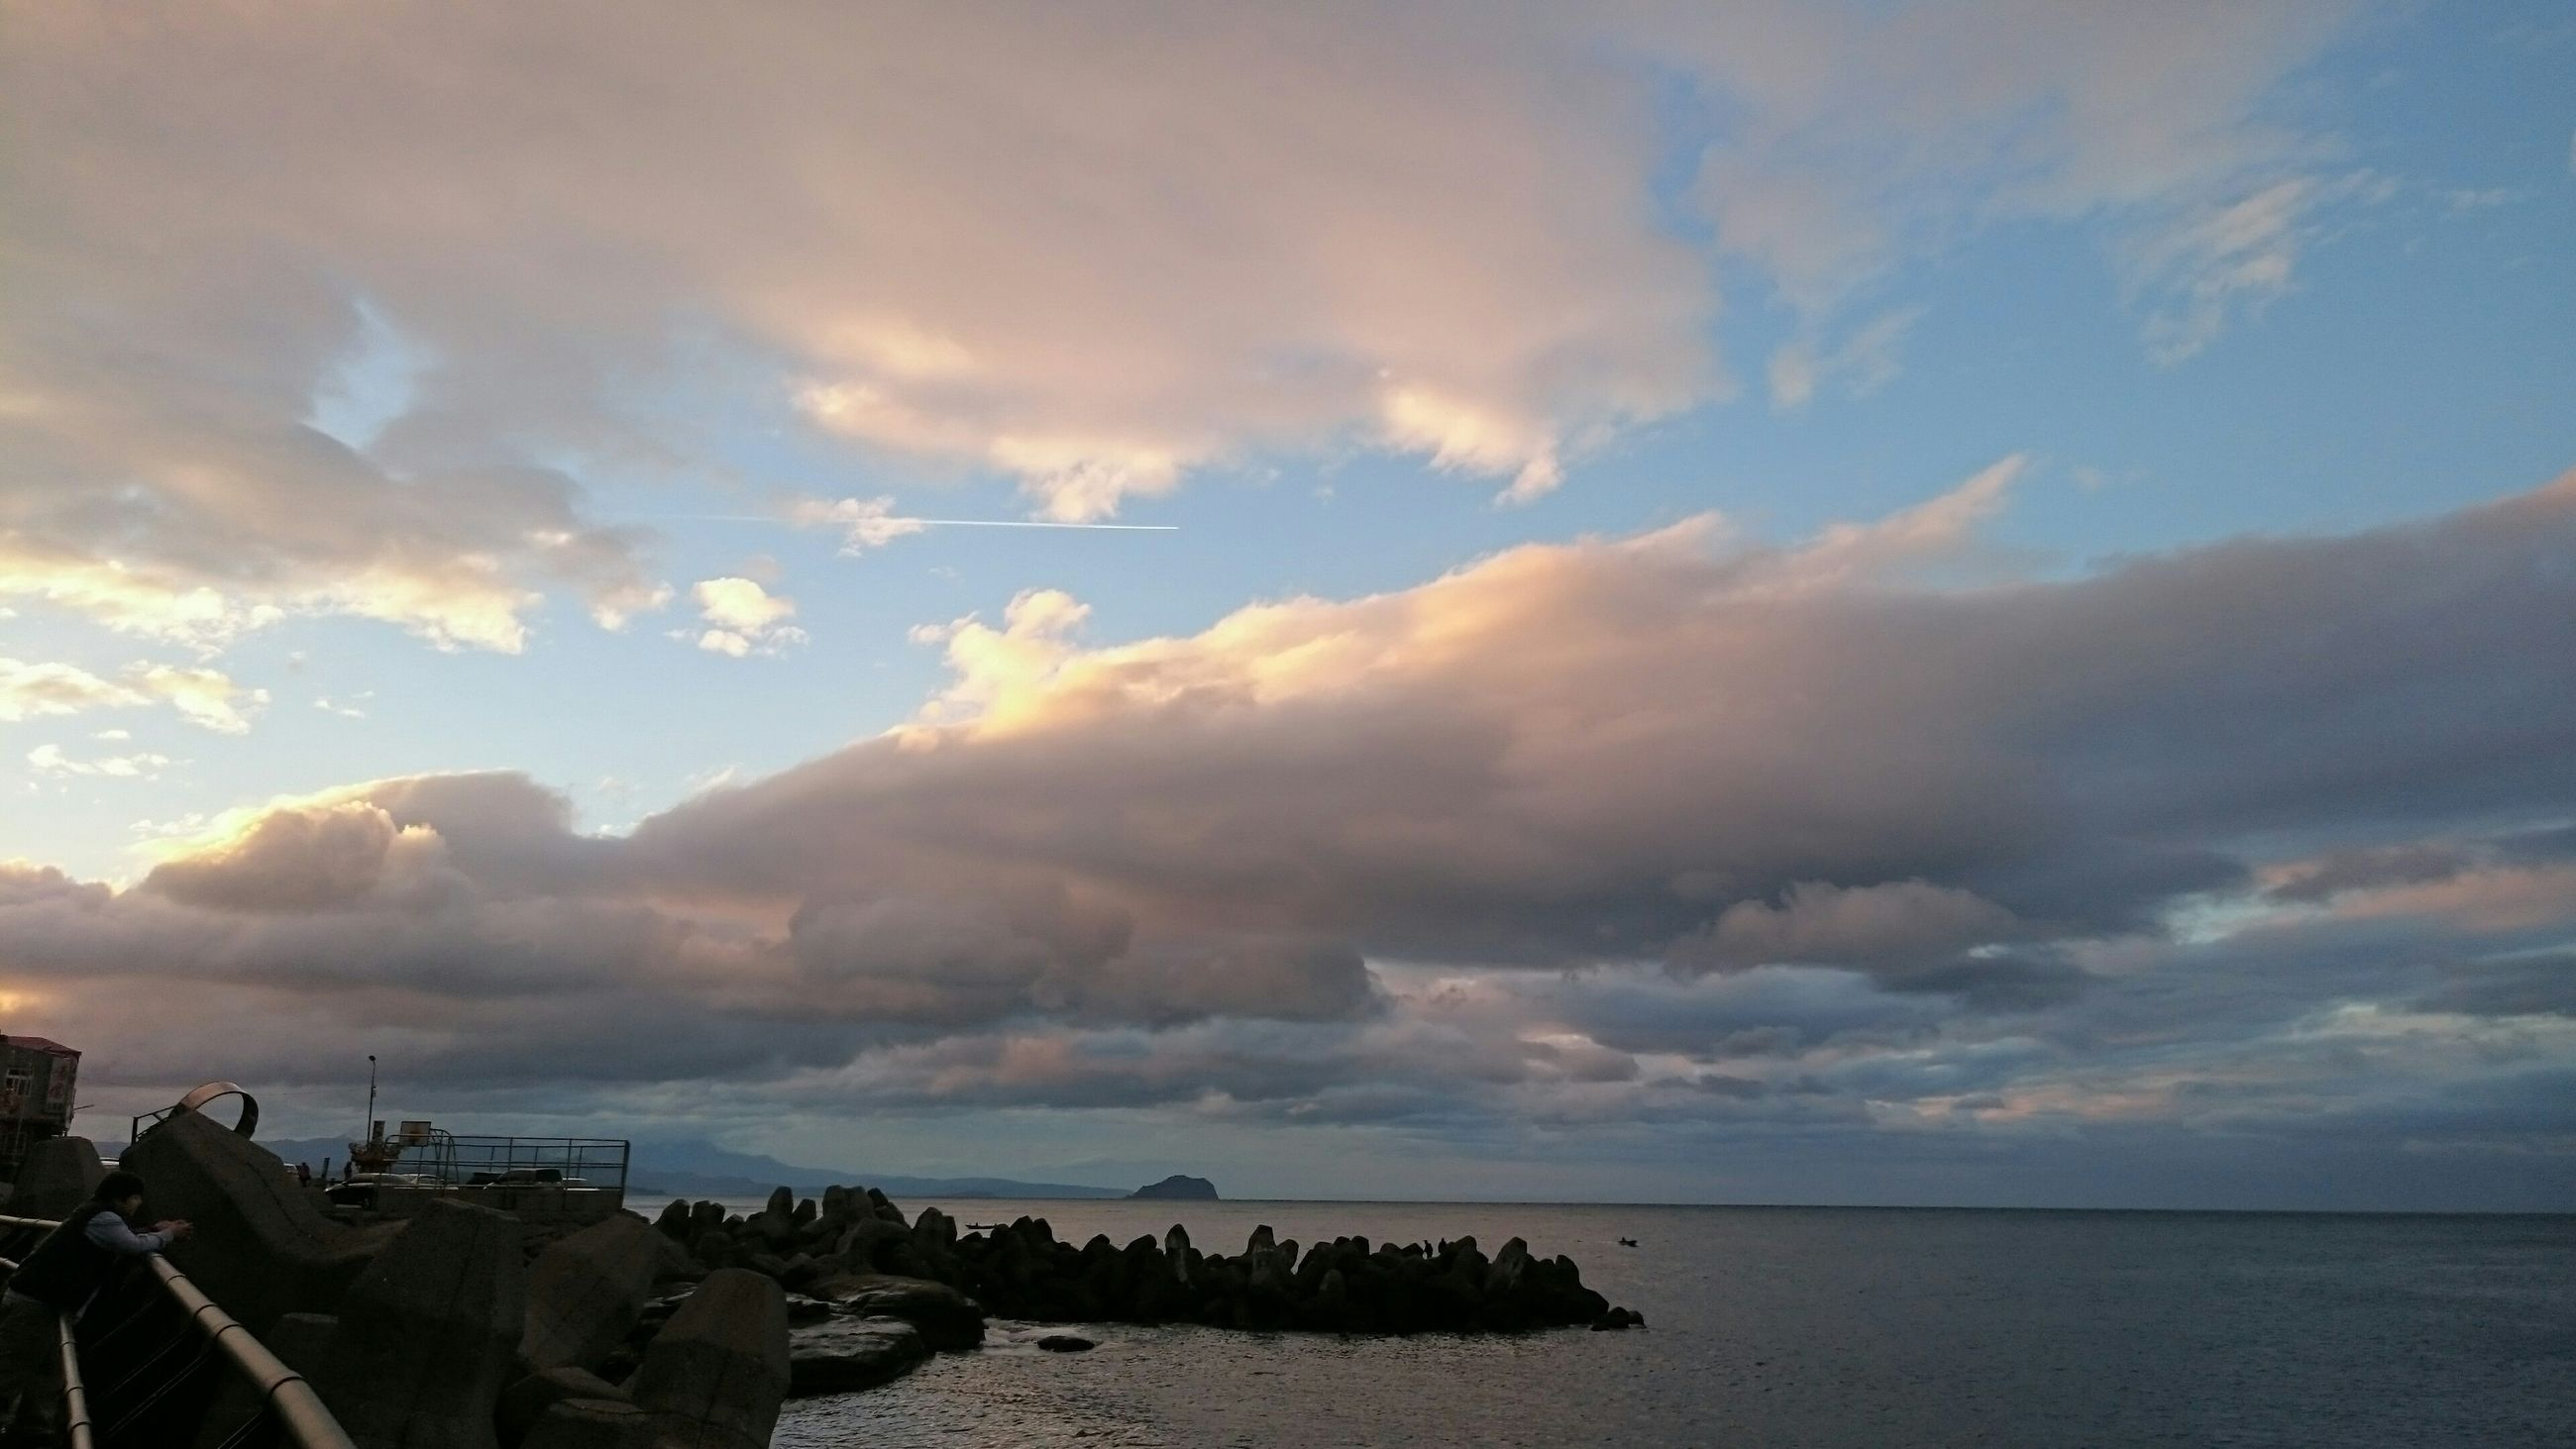 sea, water, sky, horizon over water, scenics, tranquil scene, tranquility, beauty in nature, cloud - sky, sunset, nature, cloudy, idyllic, cloud, waterfront, silhouette, outdoors, dusk, calm, no people